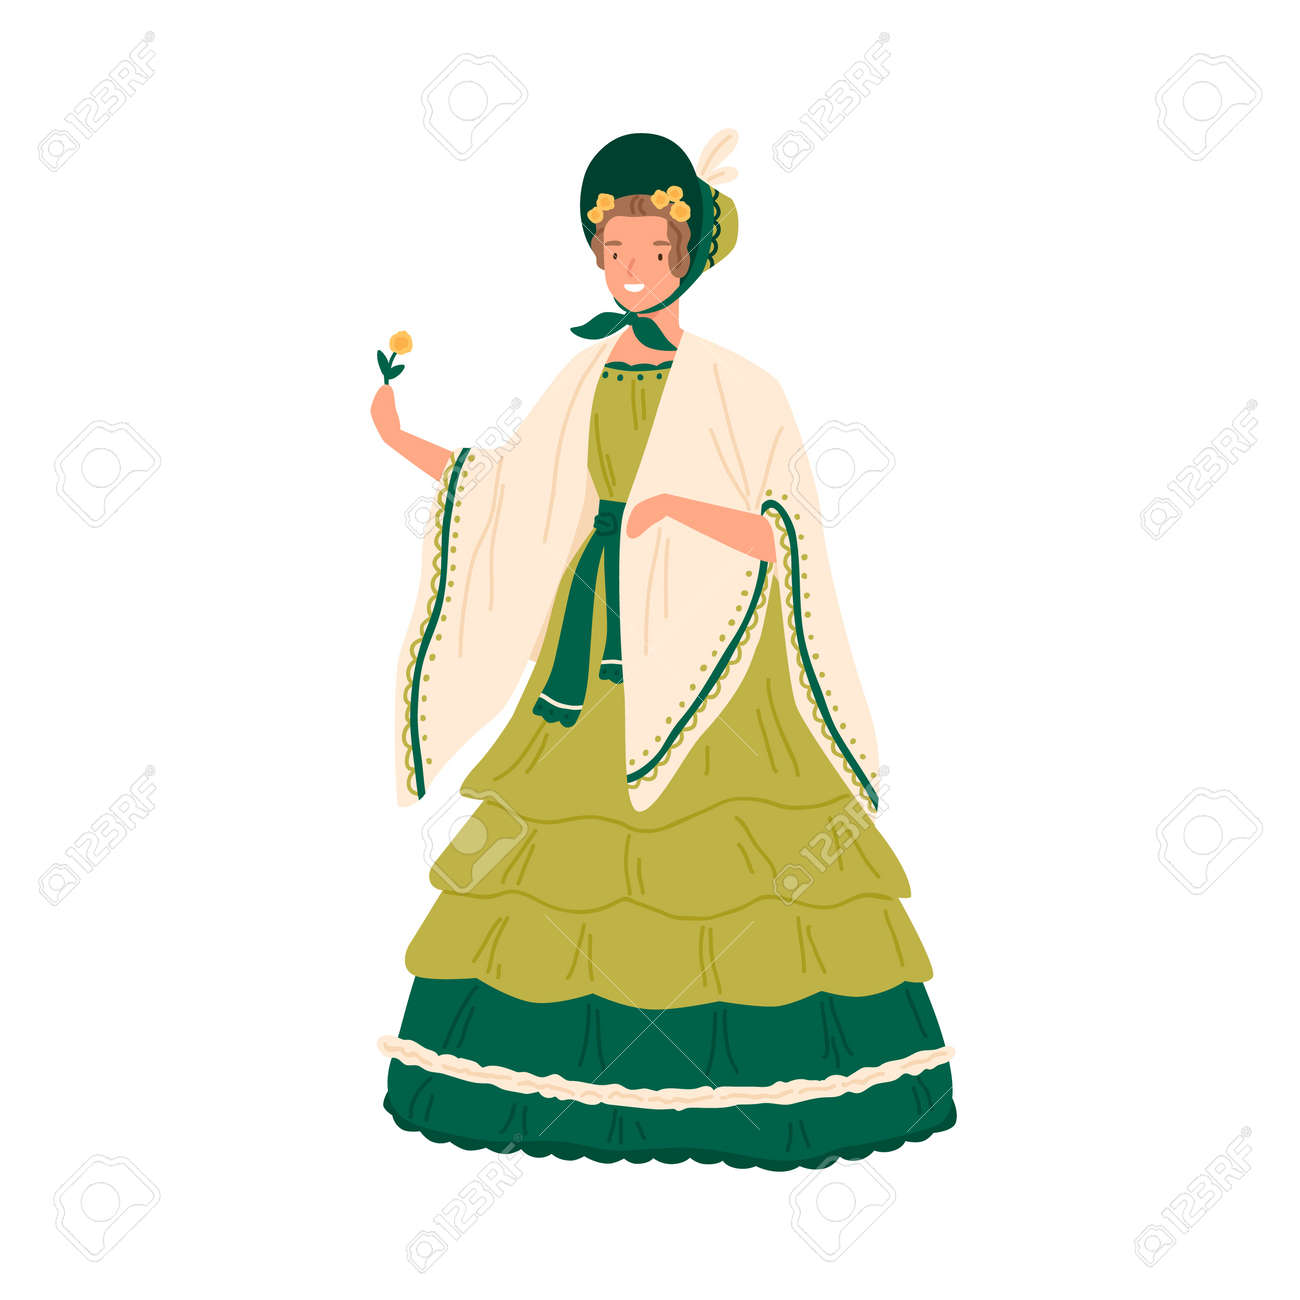 Vintage young woman wearing retro dress and hat decorated with ruffles in 1830s decade style. Female character in elegant baroque clothes. Flat vector cartoon illustration isolated on white - 159941172